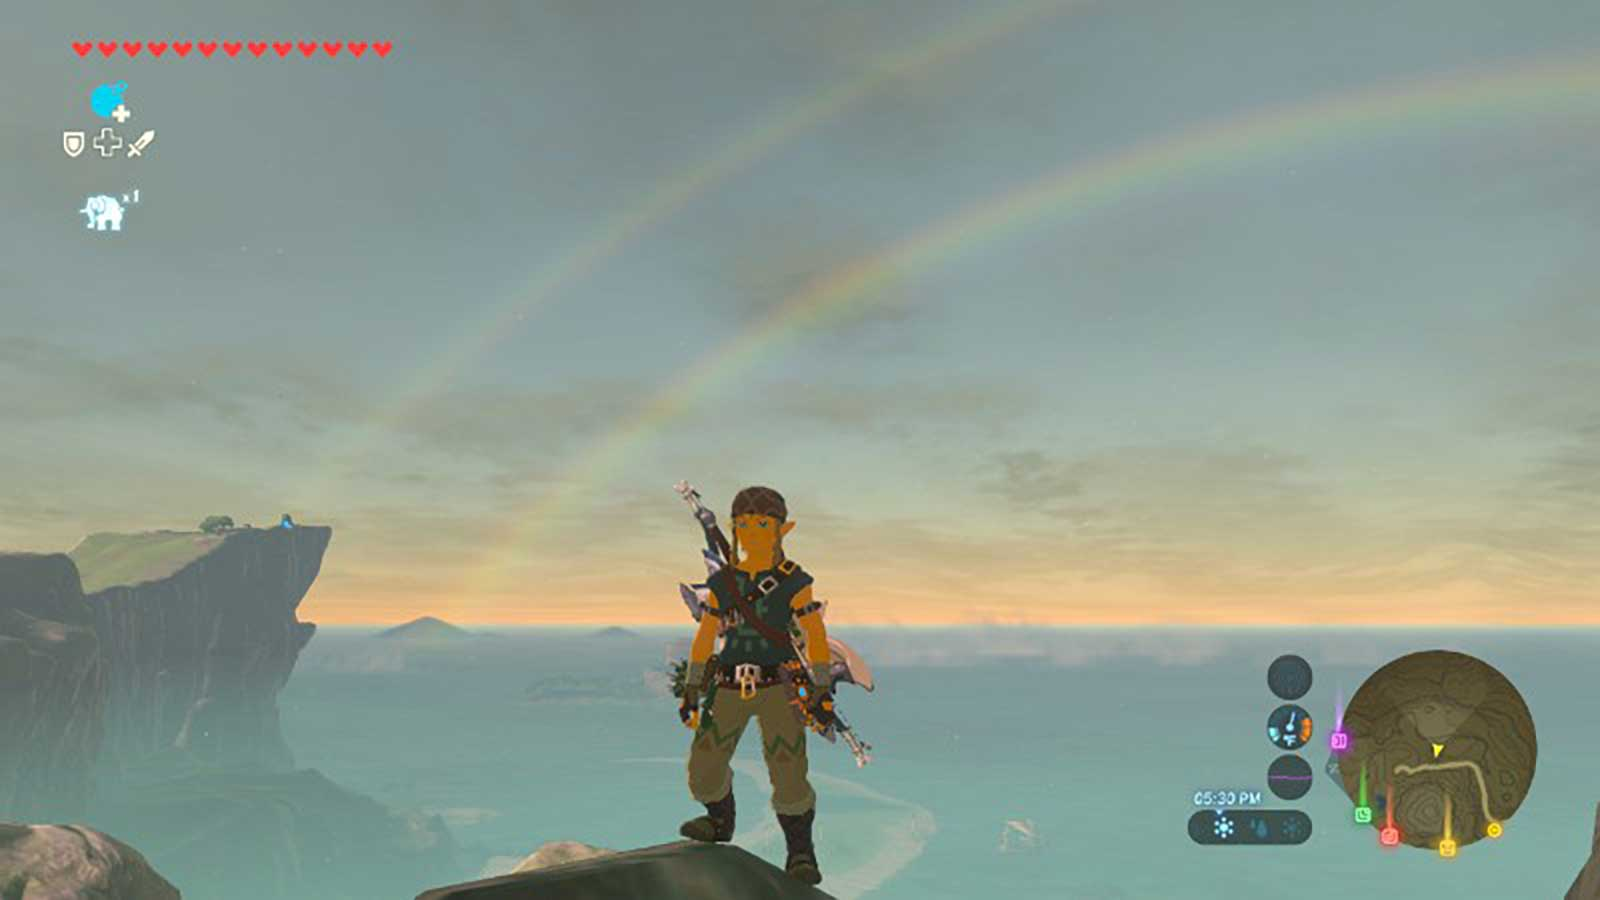 Link on the mountainside with a double rainbow apparent in the background